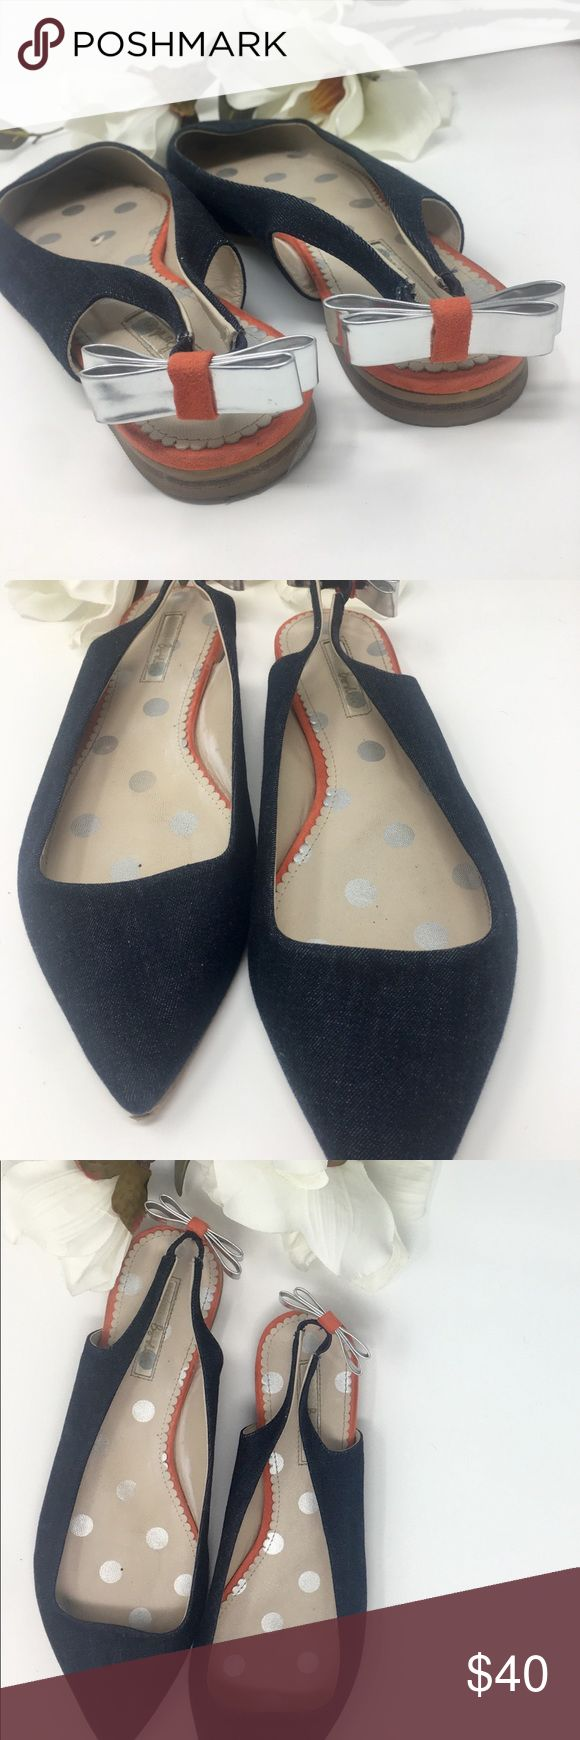 ⚜️Boden Sling backs shoes⚜️ Beautiful sling back Boden Euro 42 shoes⚜️Denim  body with silver bow accent and orange suede trim⚜️Good condition with minor scuff marks on heels Boden Shoes